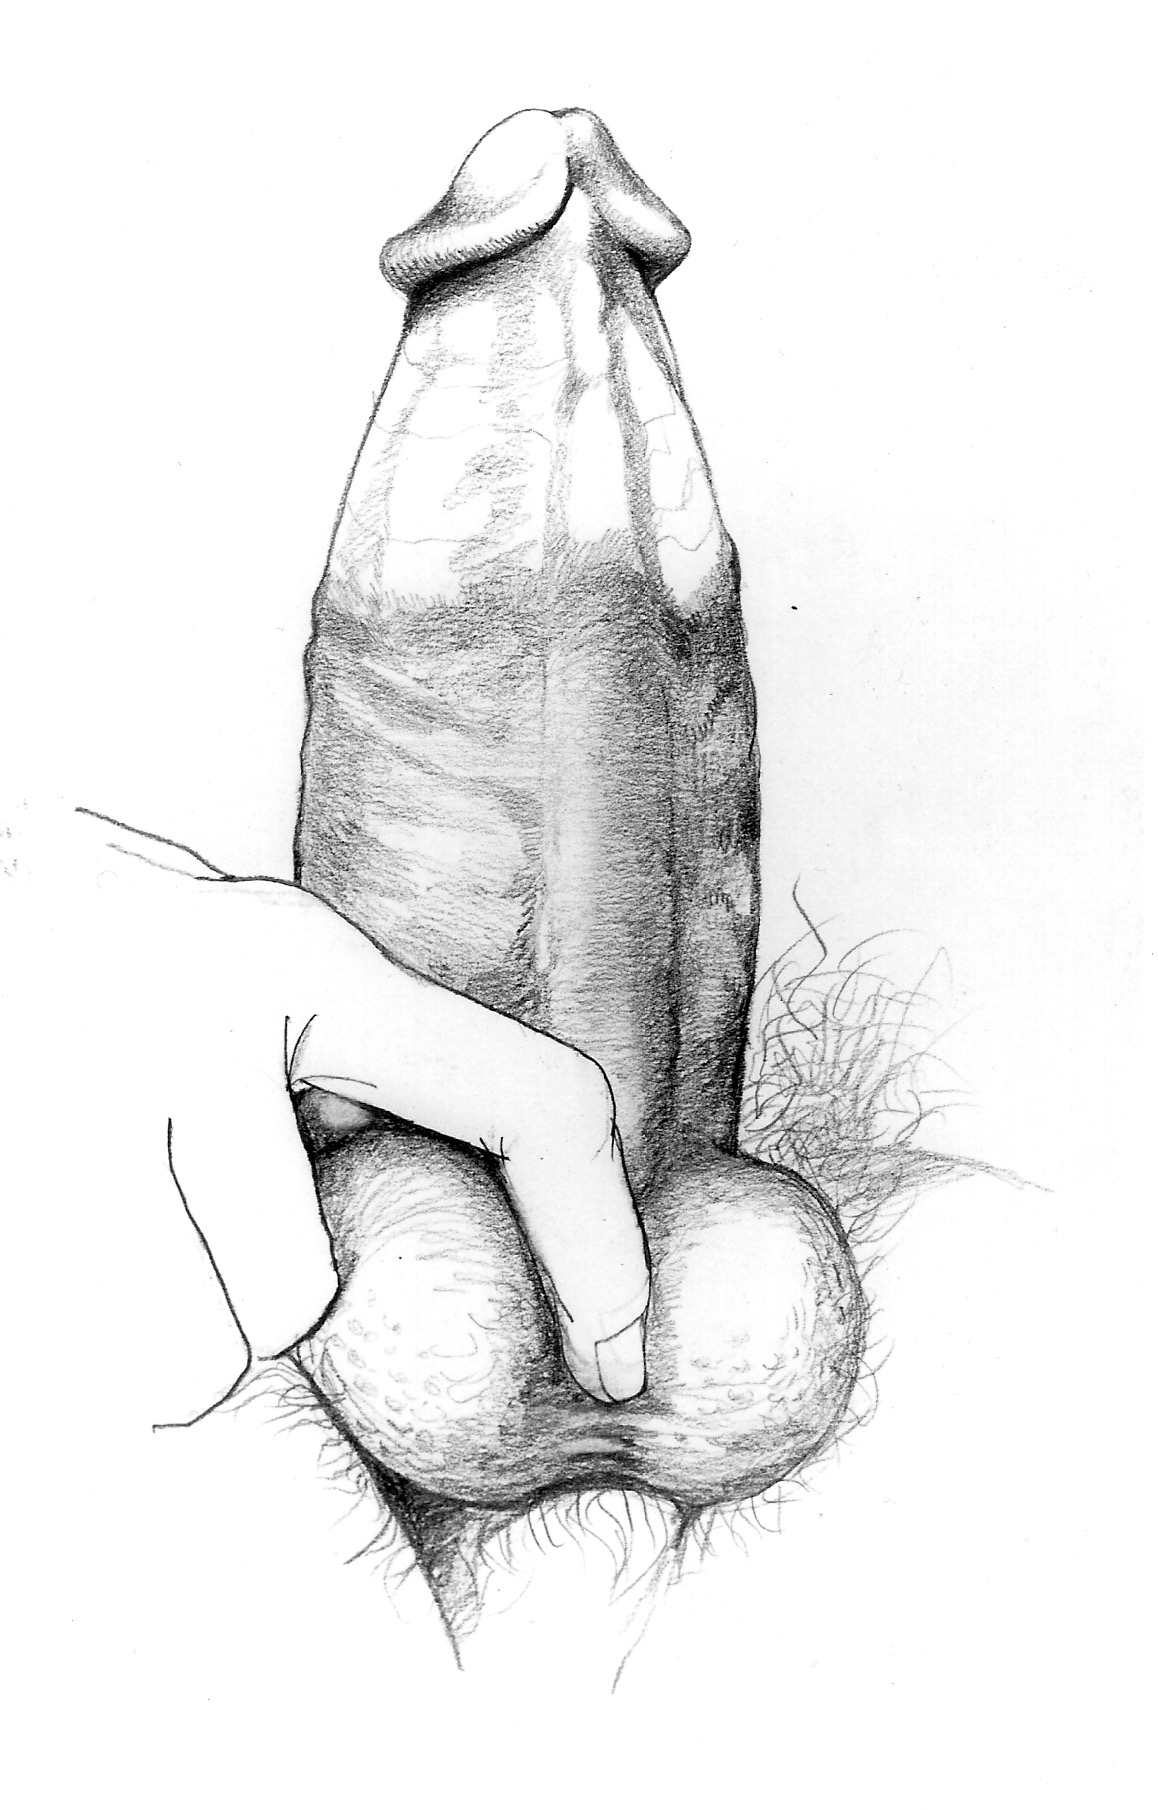 A Drawing Showing Breasts, Vagina And Penis